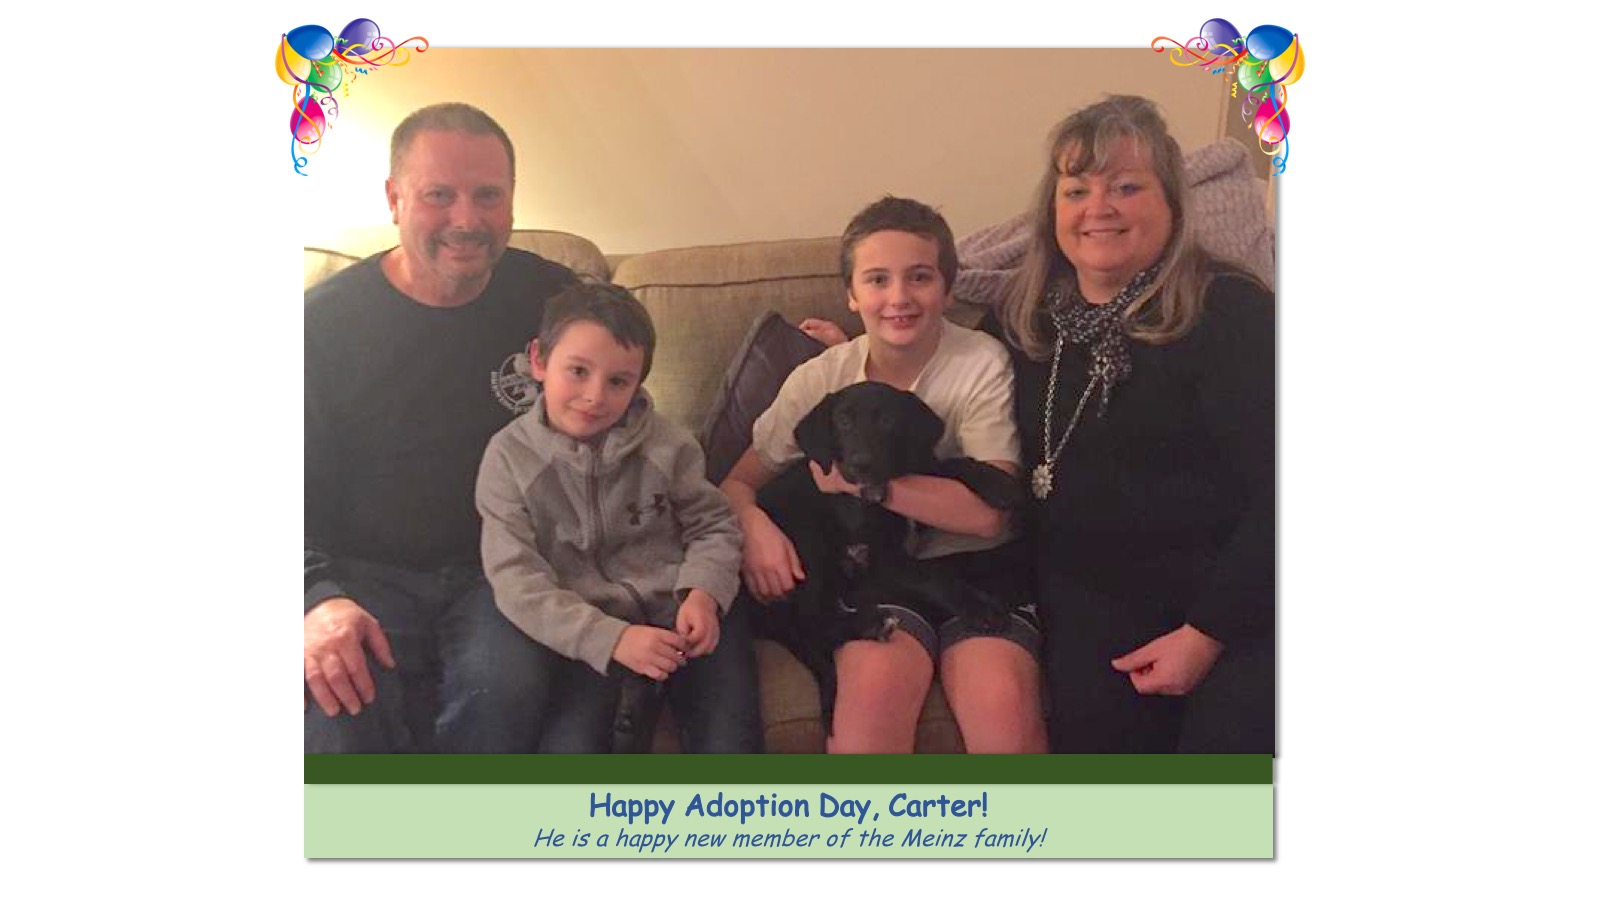 Carter_Adoption_Photo64890.jpg